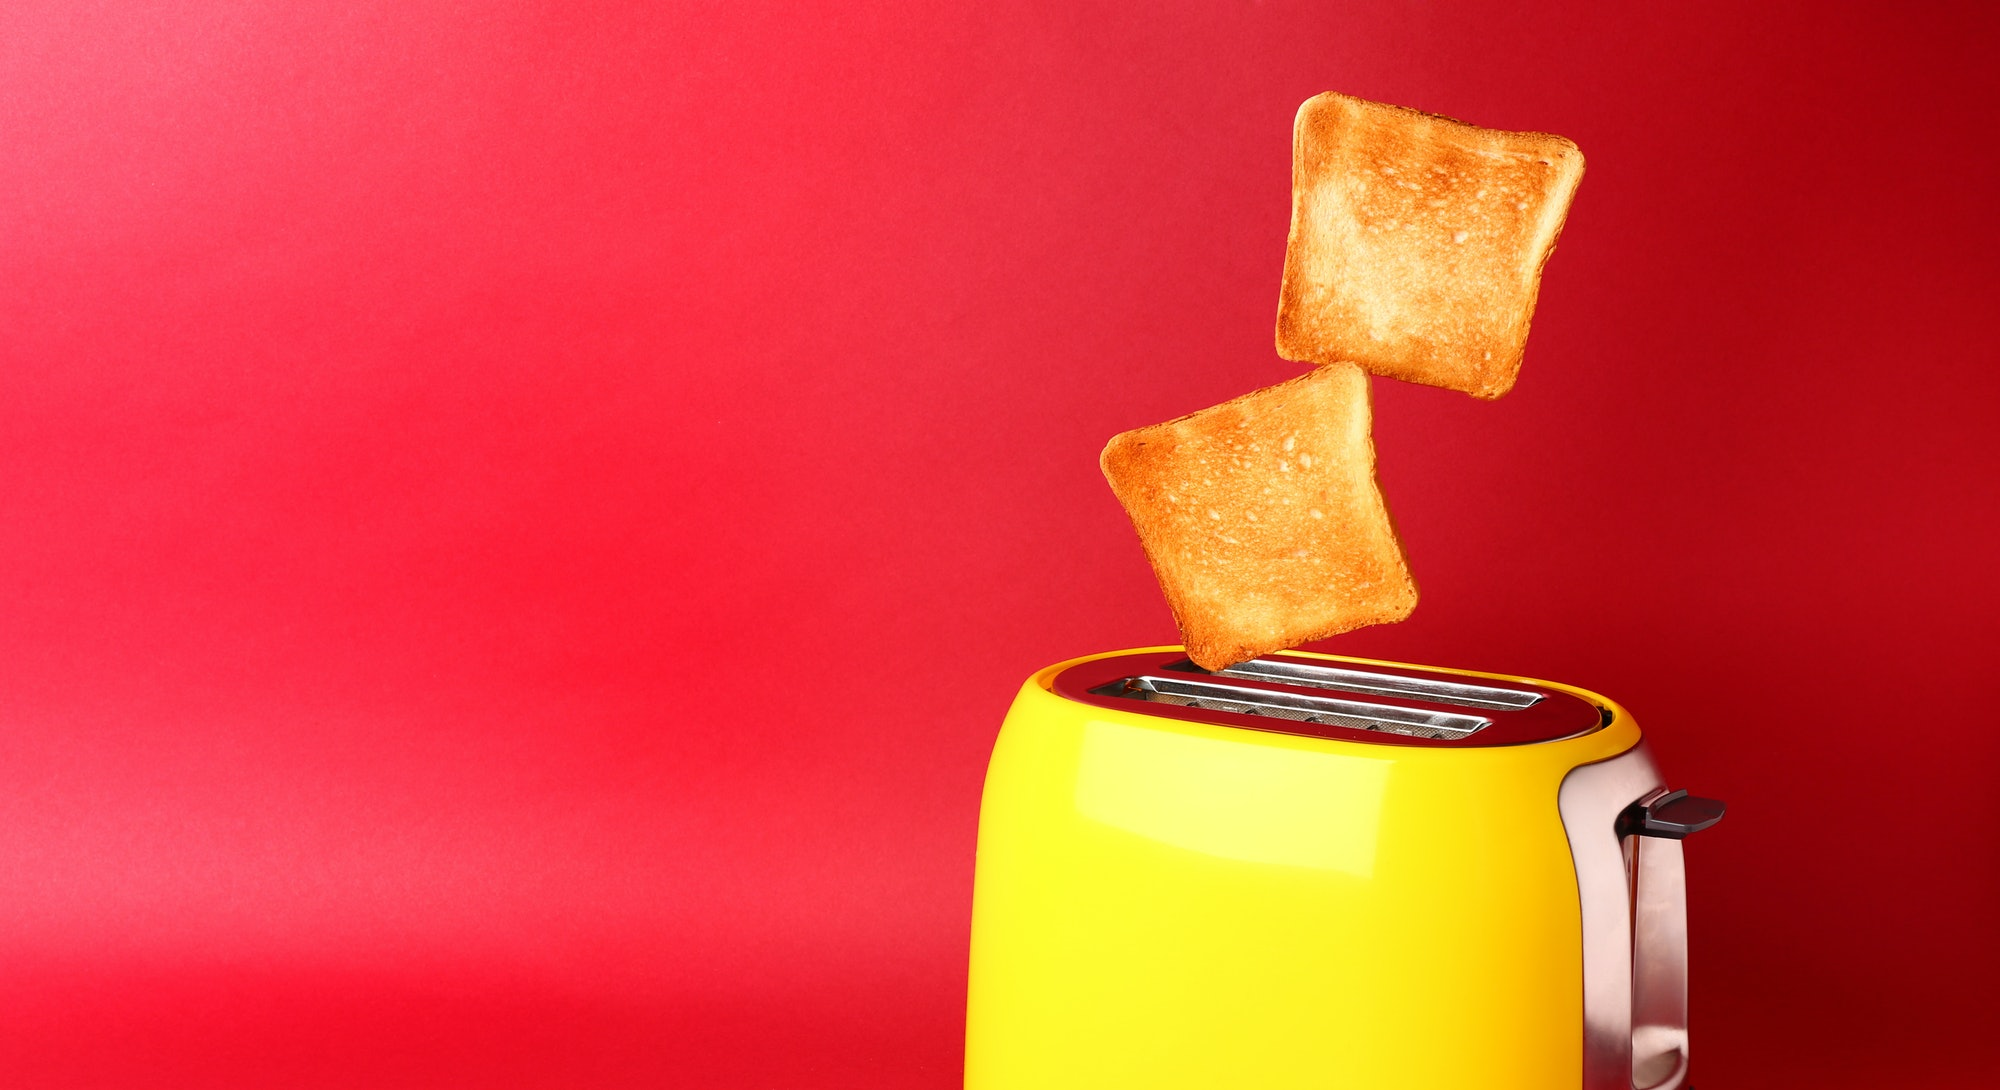 Toaster with bread slices on color background